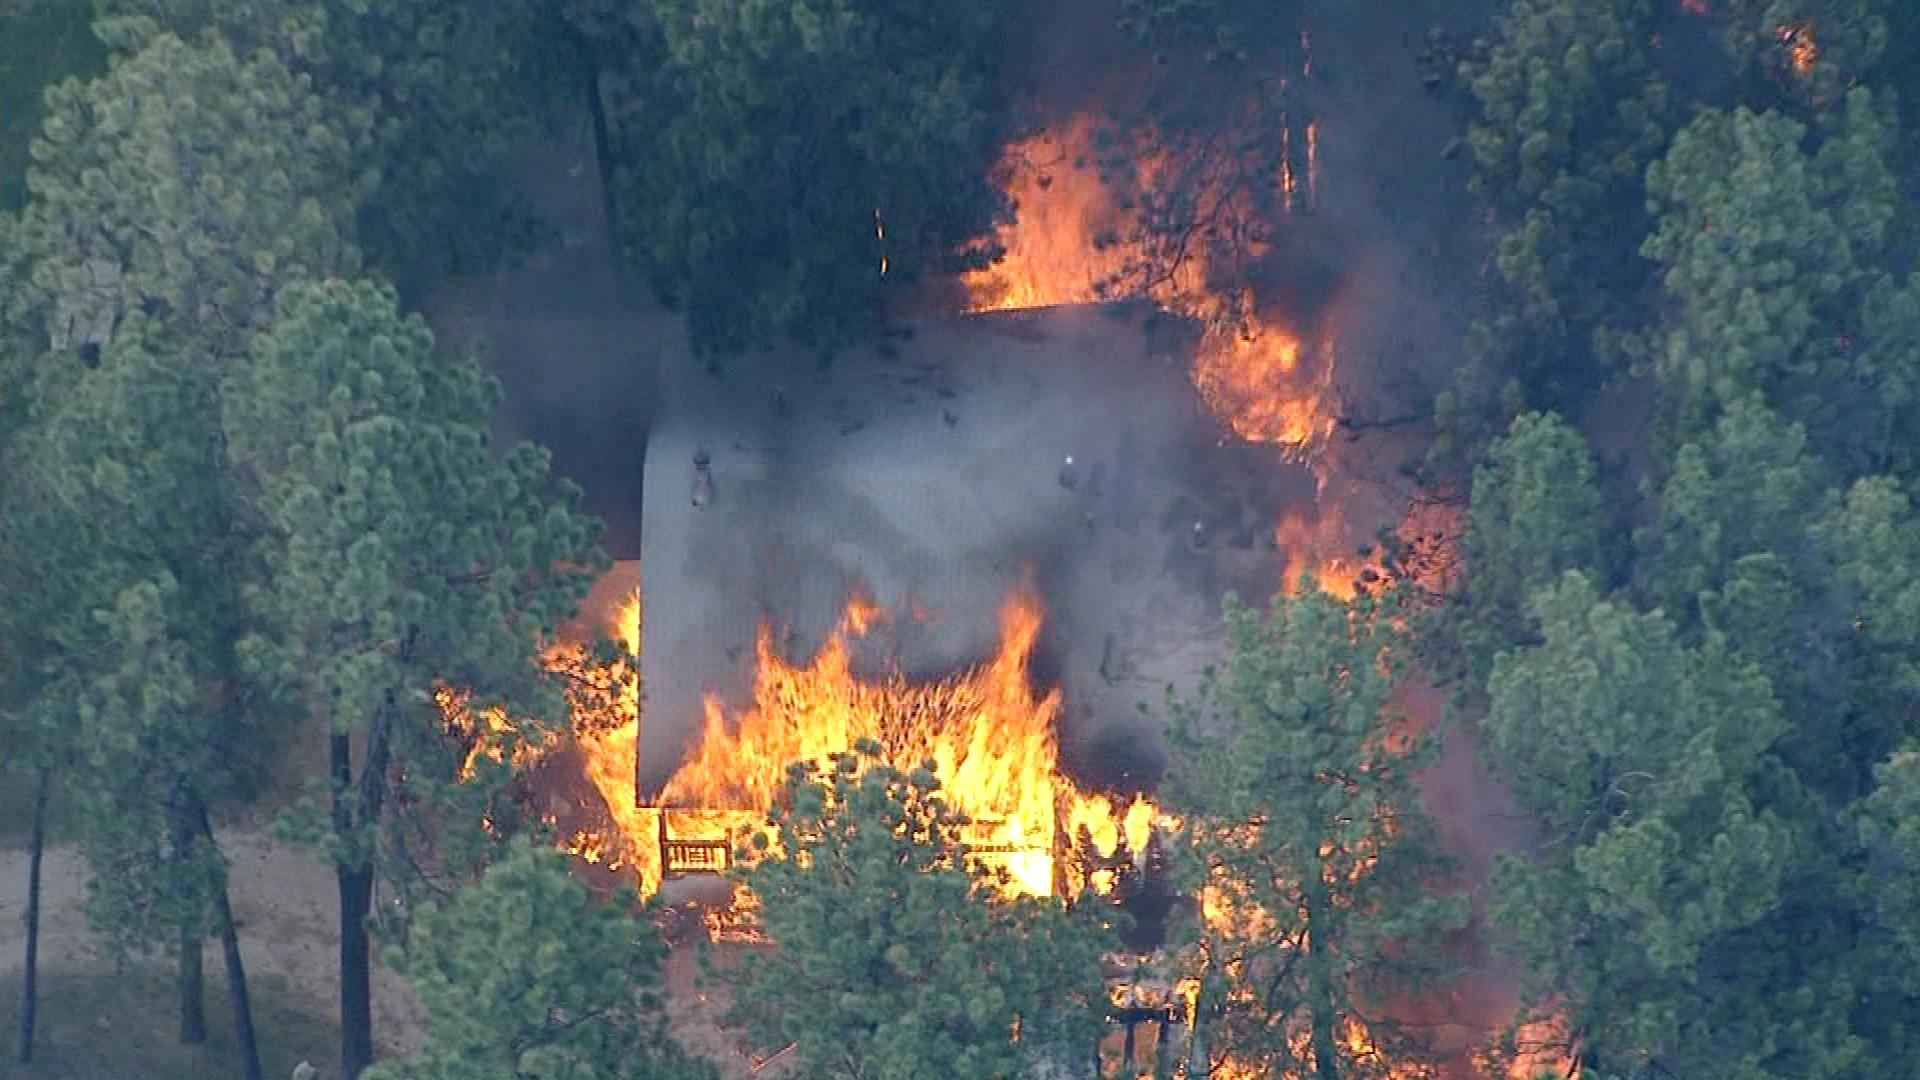 A house burned during the Black Forest Fire  (credit: CBS)